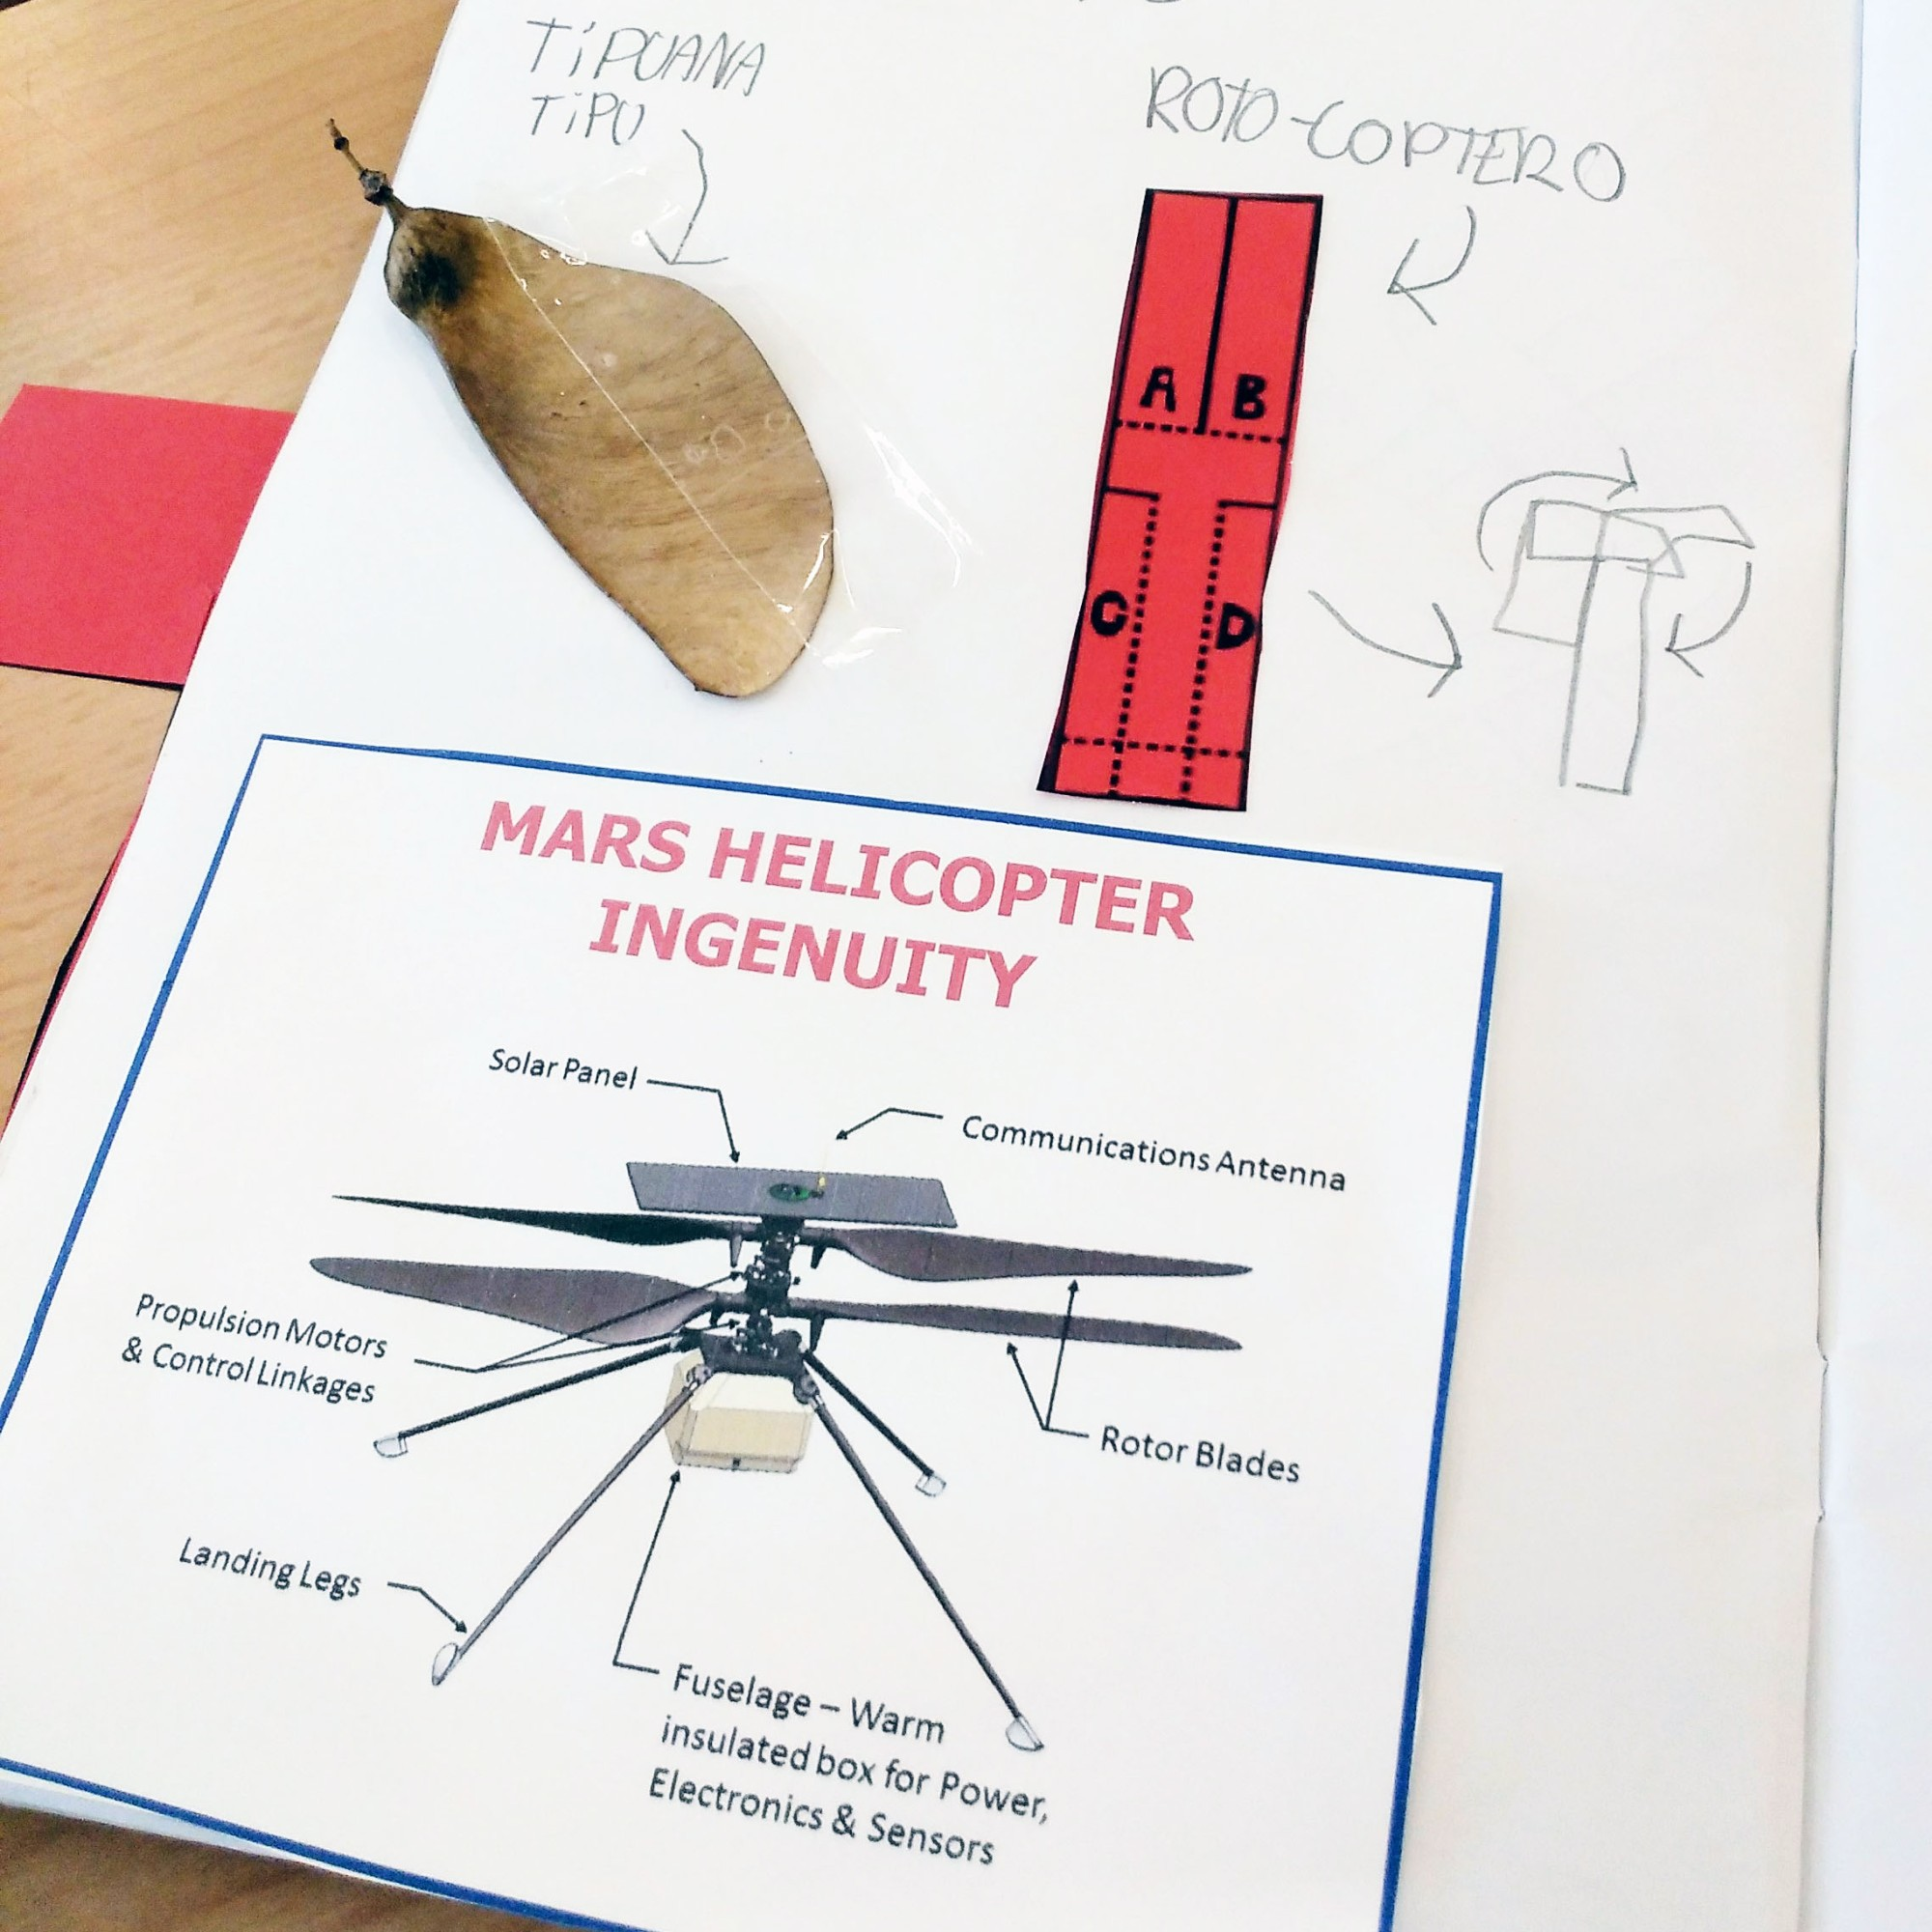 Tallers Ciència Física Llavors Tipuana tipu rotocopter STEM ingenuityhelicopter